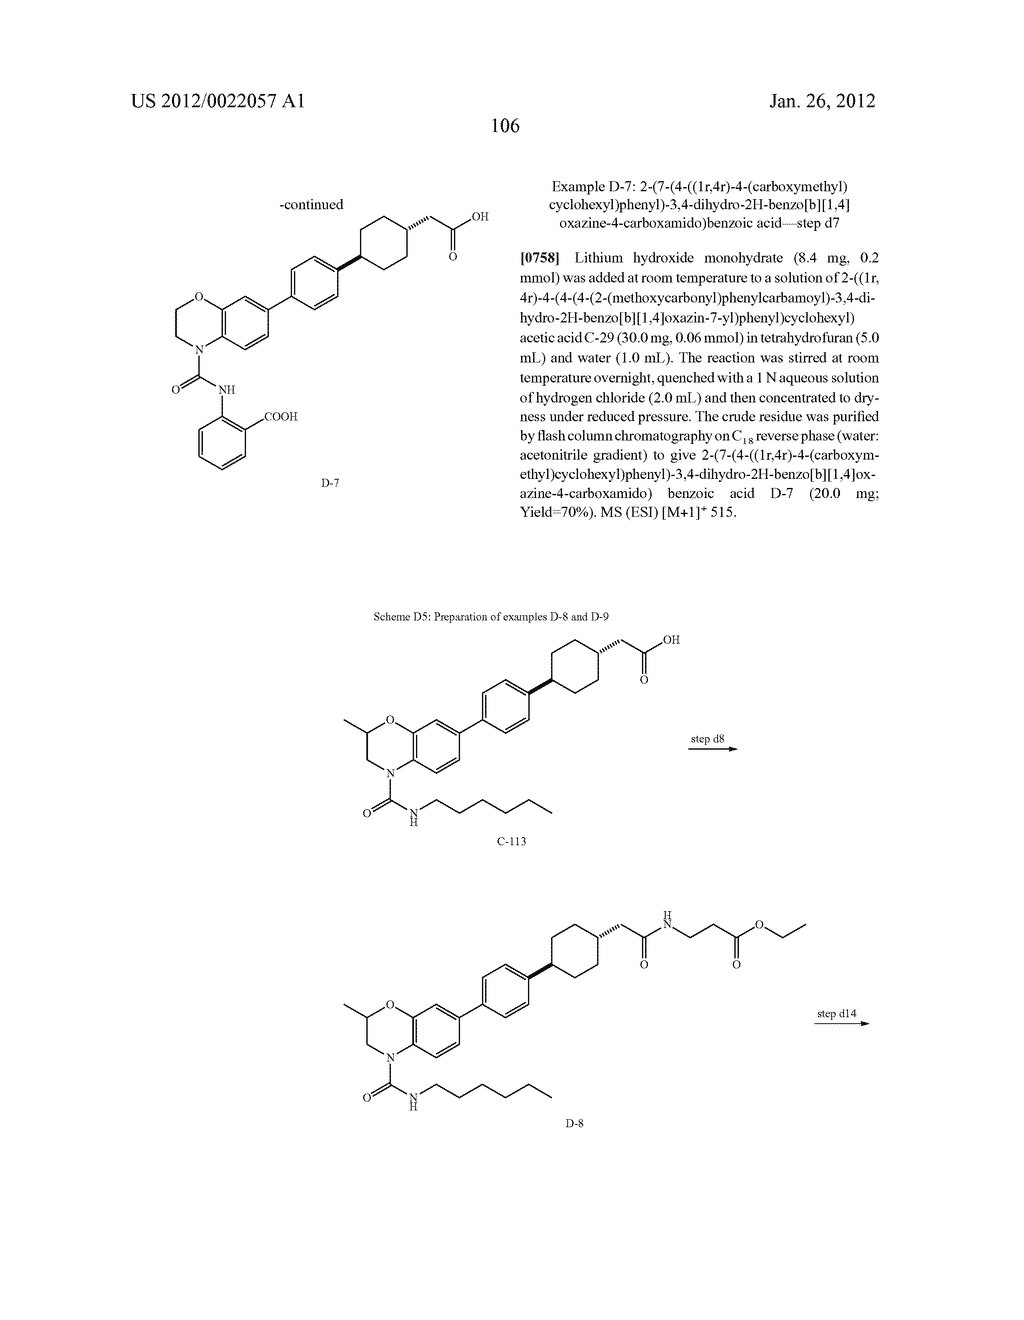 BICYCLIC COMPOUNDS AS INHIBITORS OF DIACYGLYCEROL ACYLTRANSFERASE - diagram, schematic, and image 107